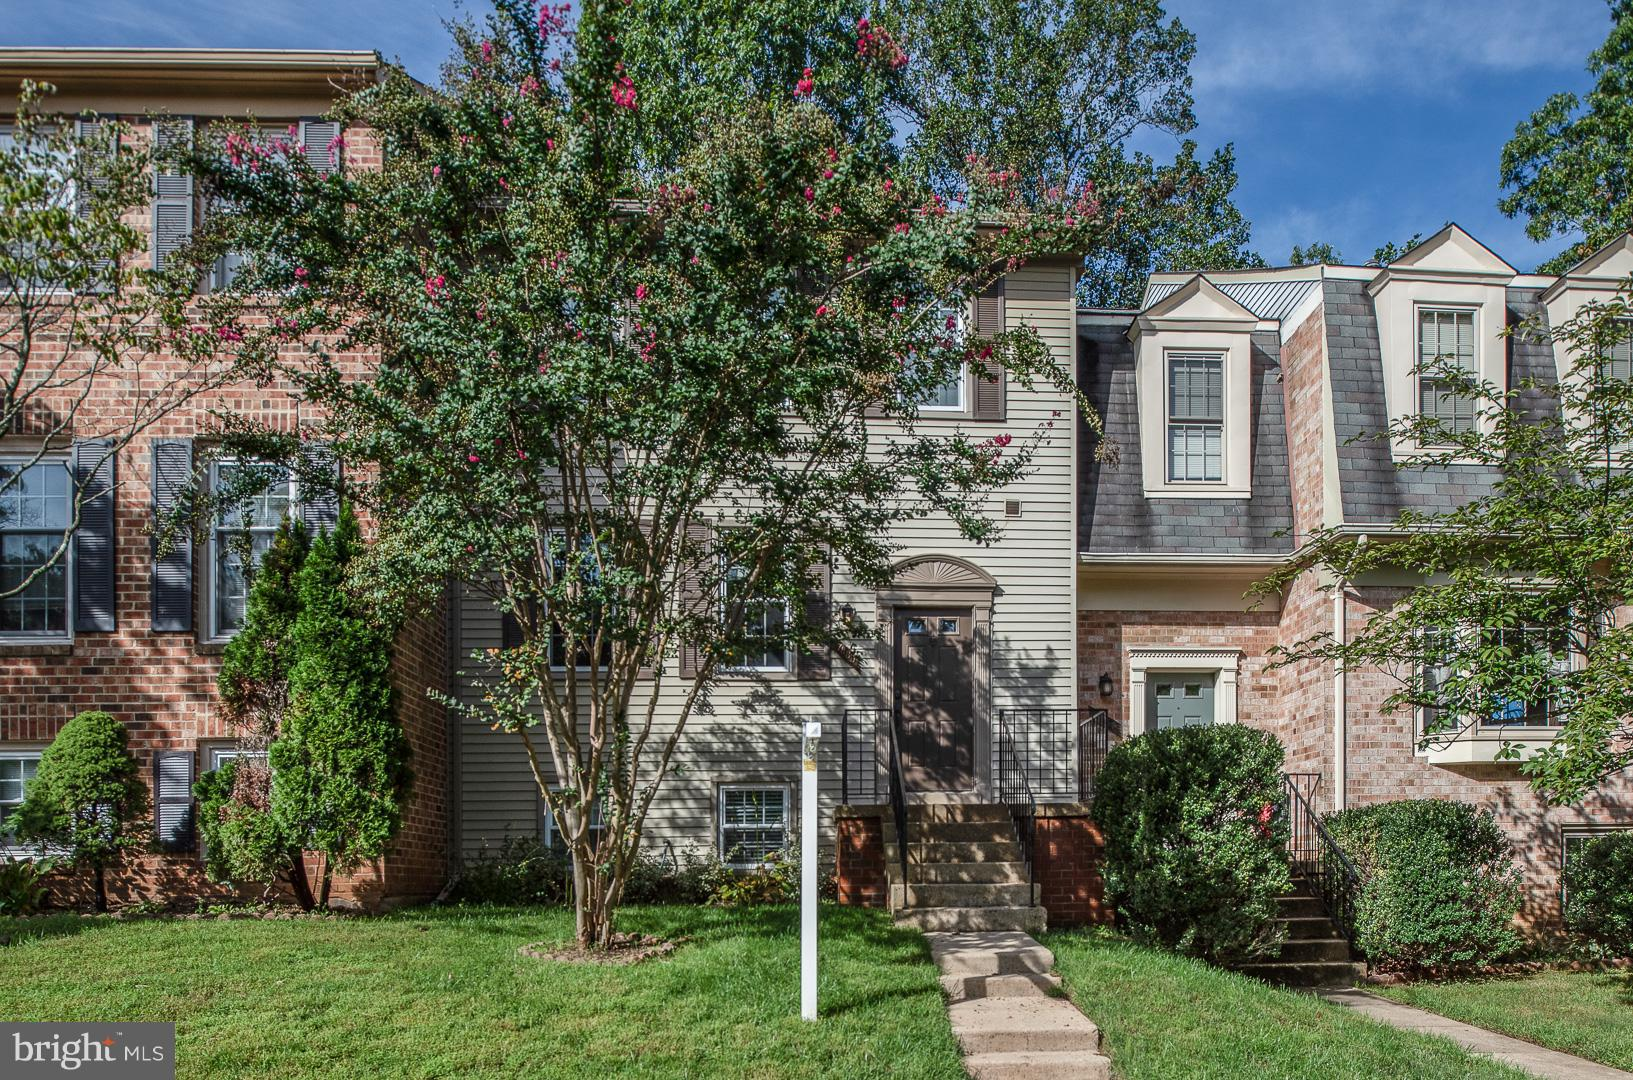 Must have 4BR/3.5BA 3LVL TH w/ upgrades head to toe. Kit w/ silestone counters, stainless steel appliances, backsplash, ceramic tile! Gorgeous BA renovations! Gleaming hardwoods on 2 levels. Walkout LL w/ Rec Rm & FP, BR & full BA! Master Suite w/ vaulted ceiling. Awesome 2 level deck looking out on woods! Energy efficient windows & SGD's! Prime location near FFX Co Pkwy, 495/395/95, & Metro!